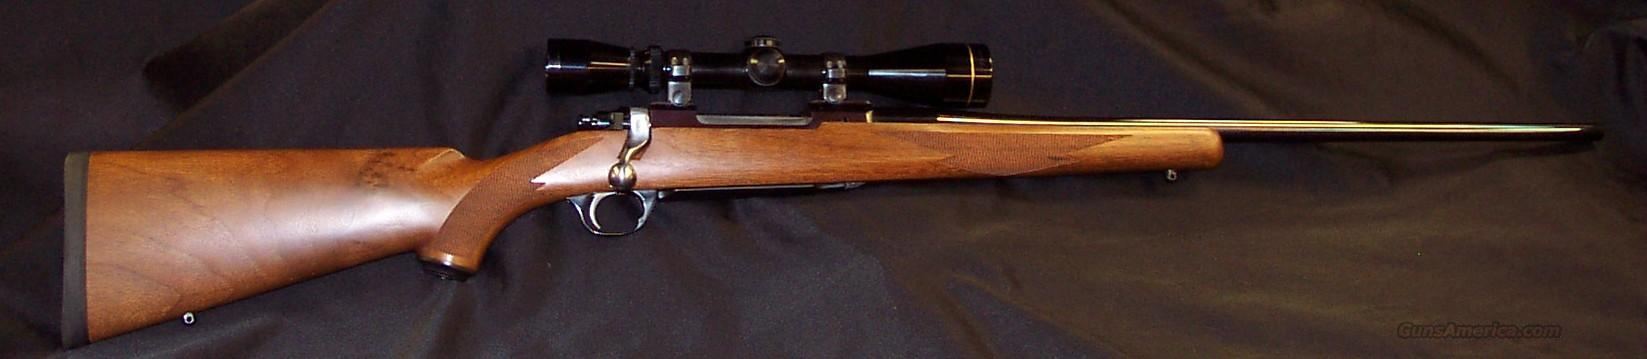 Ruger Model 77 MK II  Guns > Rifles > Ruger Rifles > Model 77